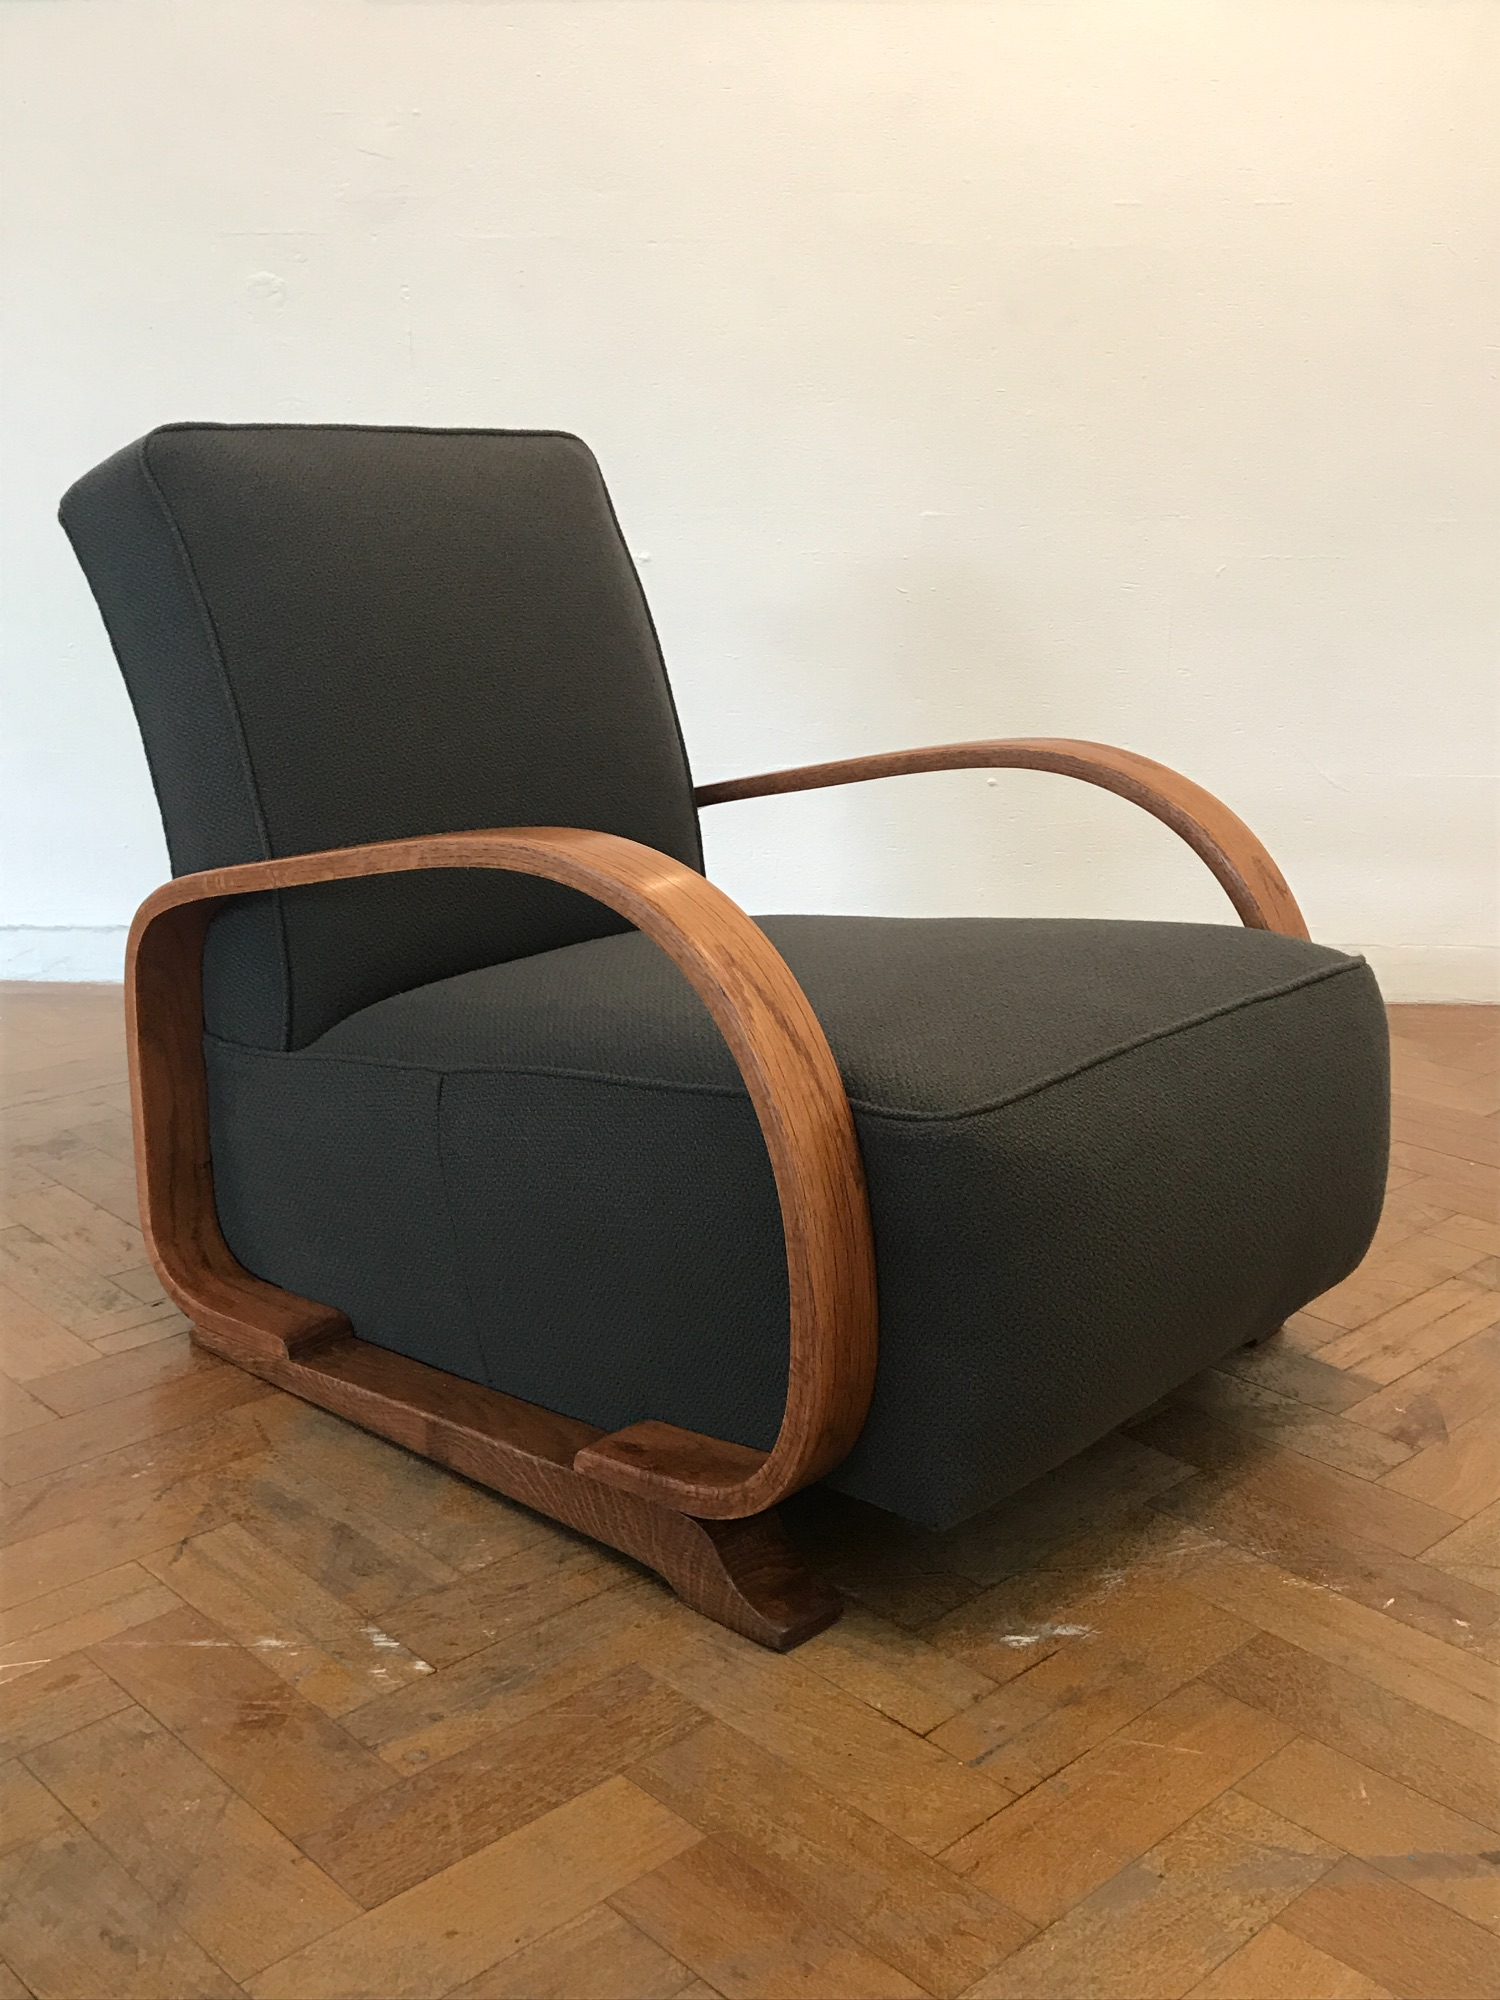 1930's Heal's arm chair with bentwood arms  by Spring Upholstery Brighton